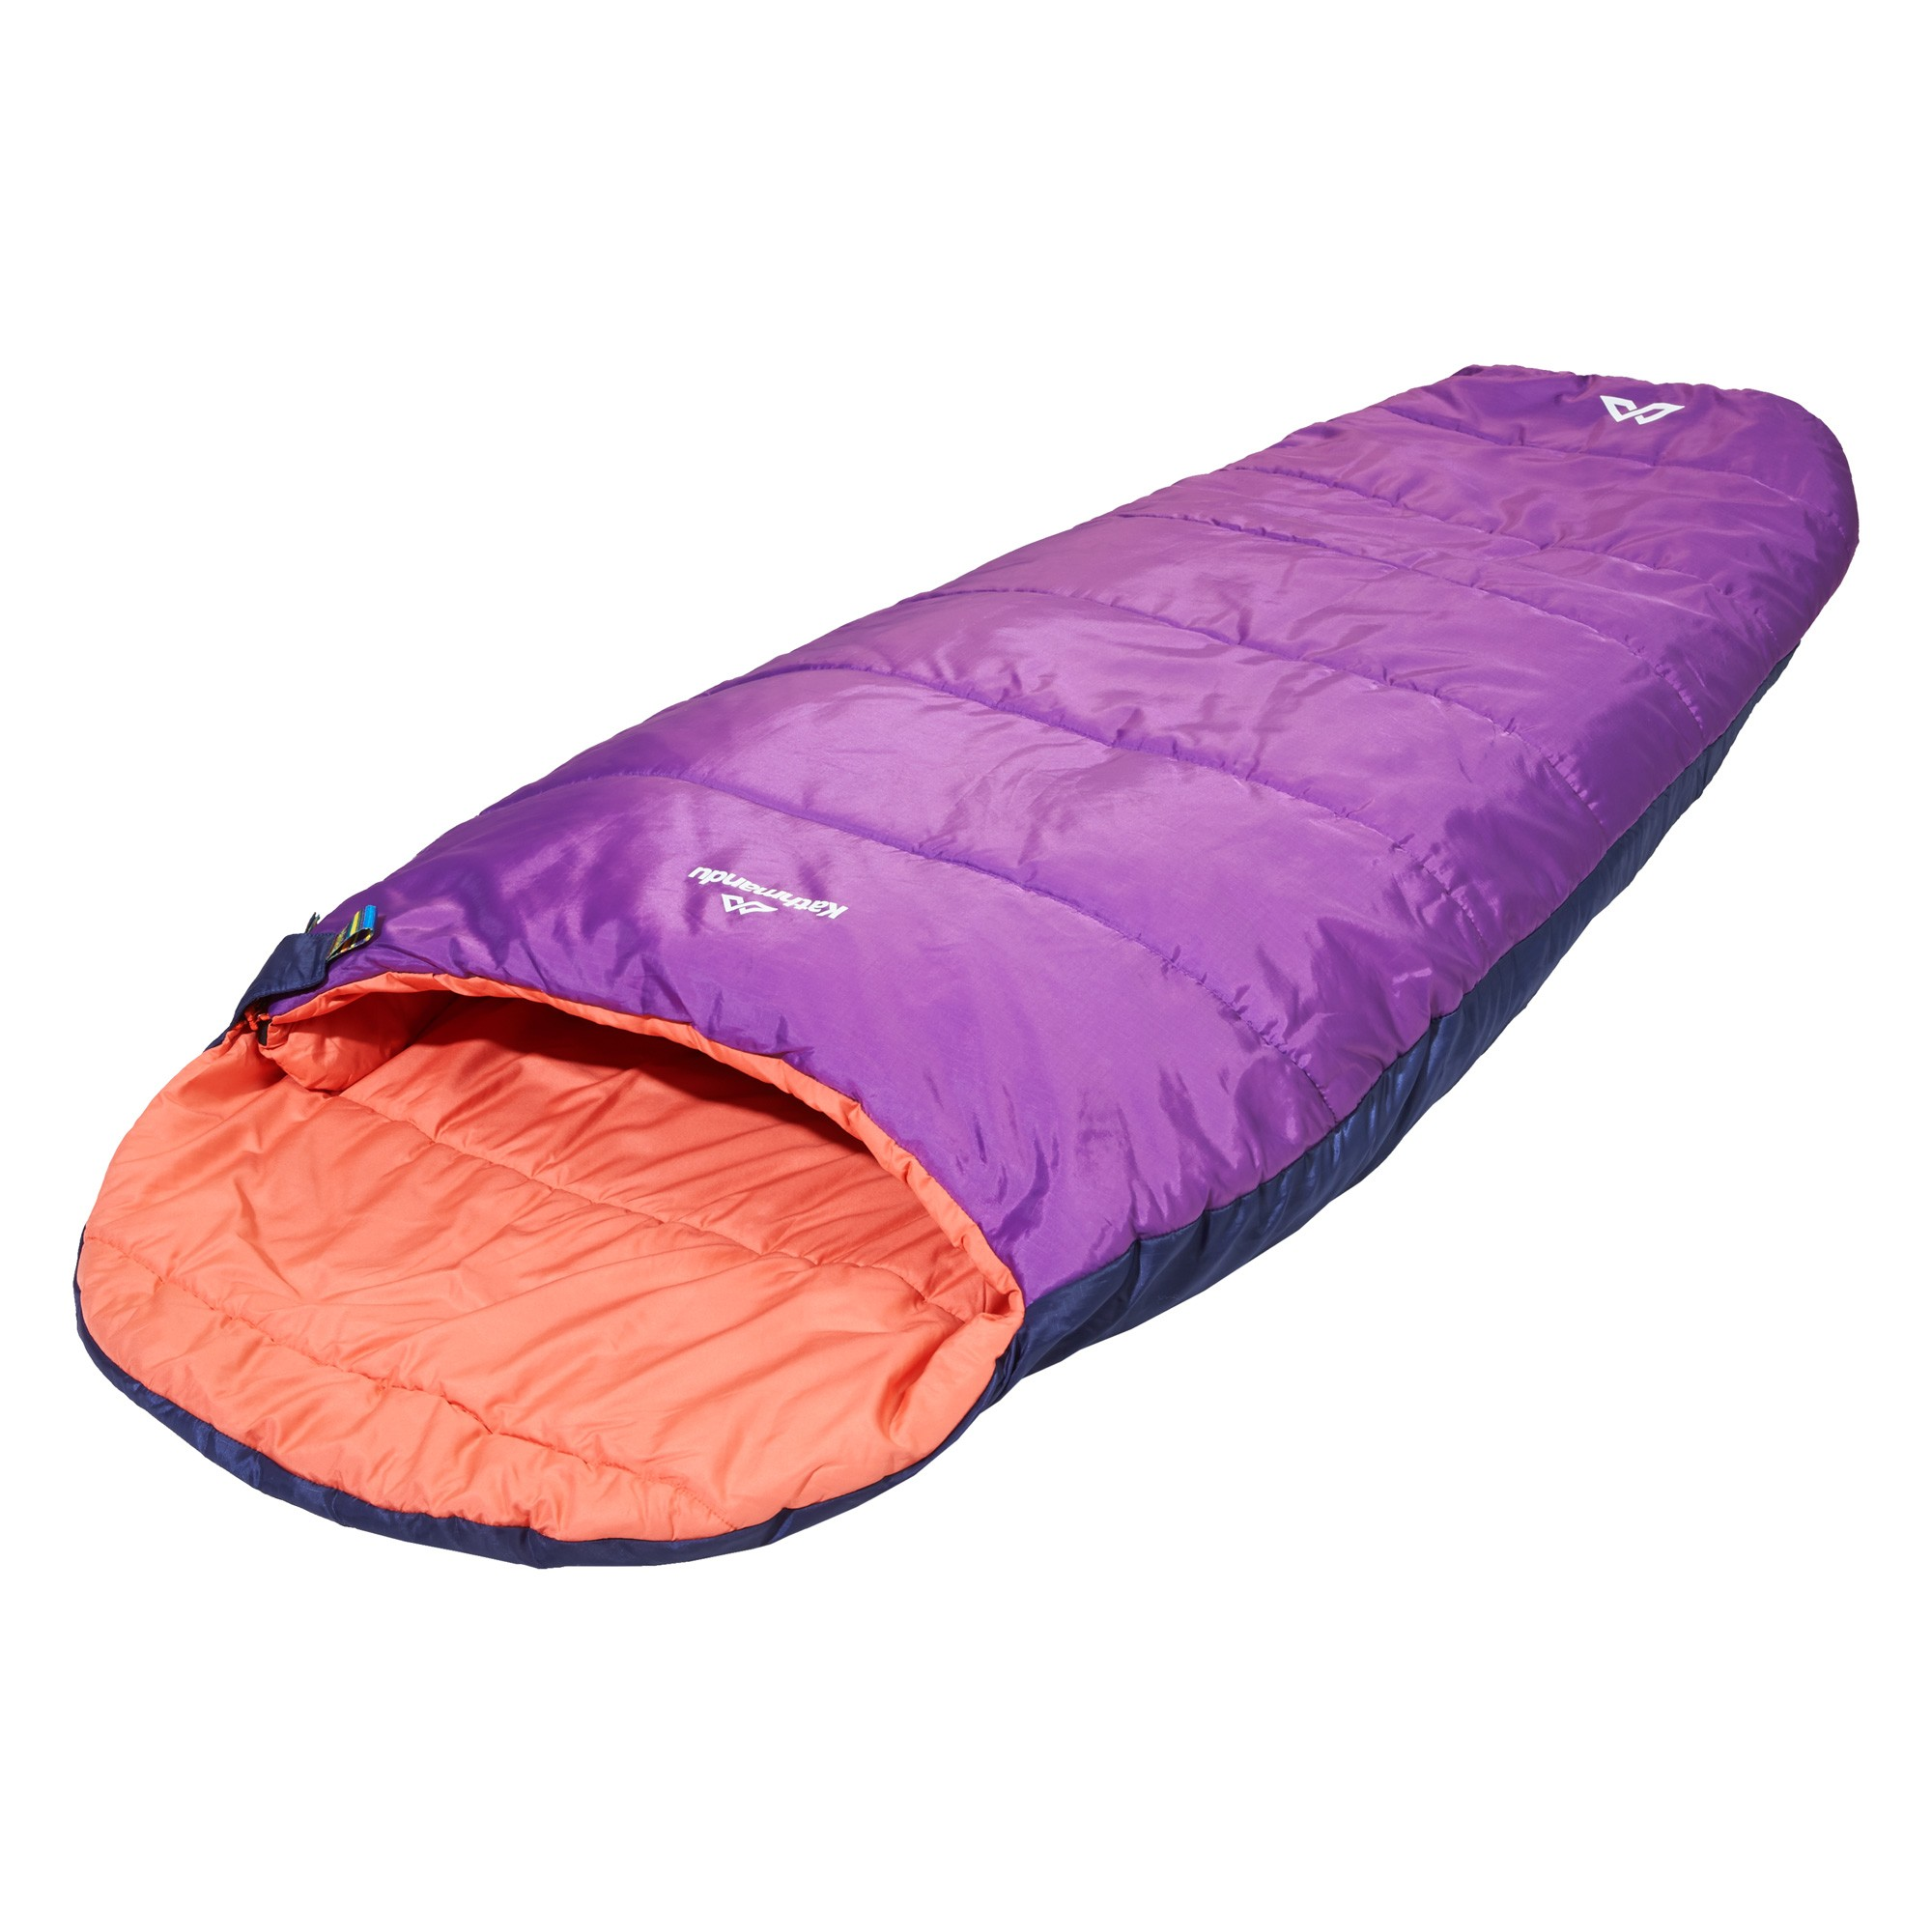 Pictures Of Sleeping Bags